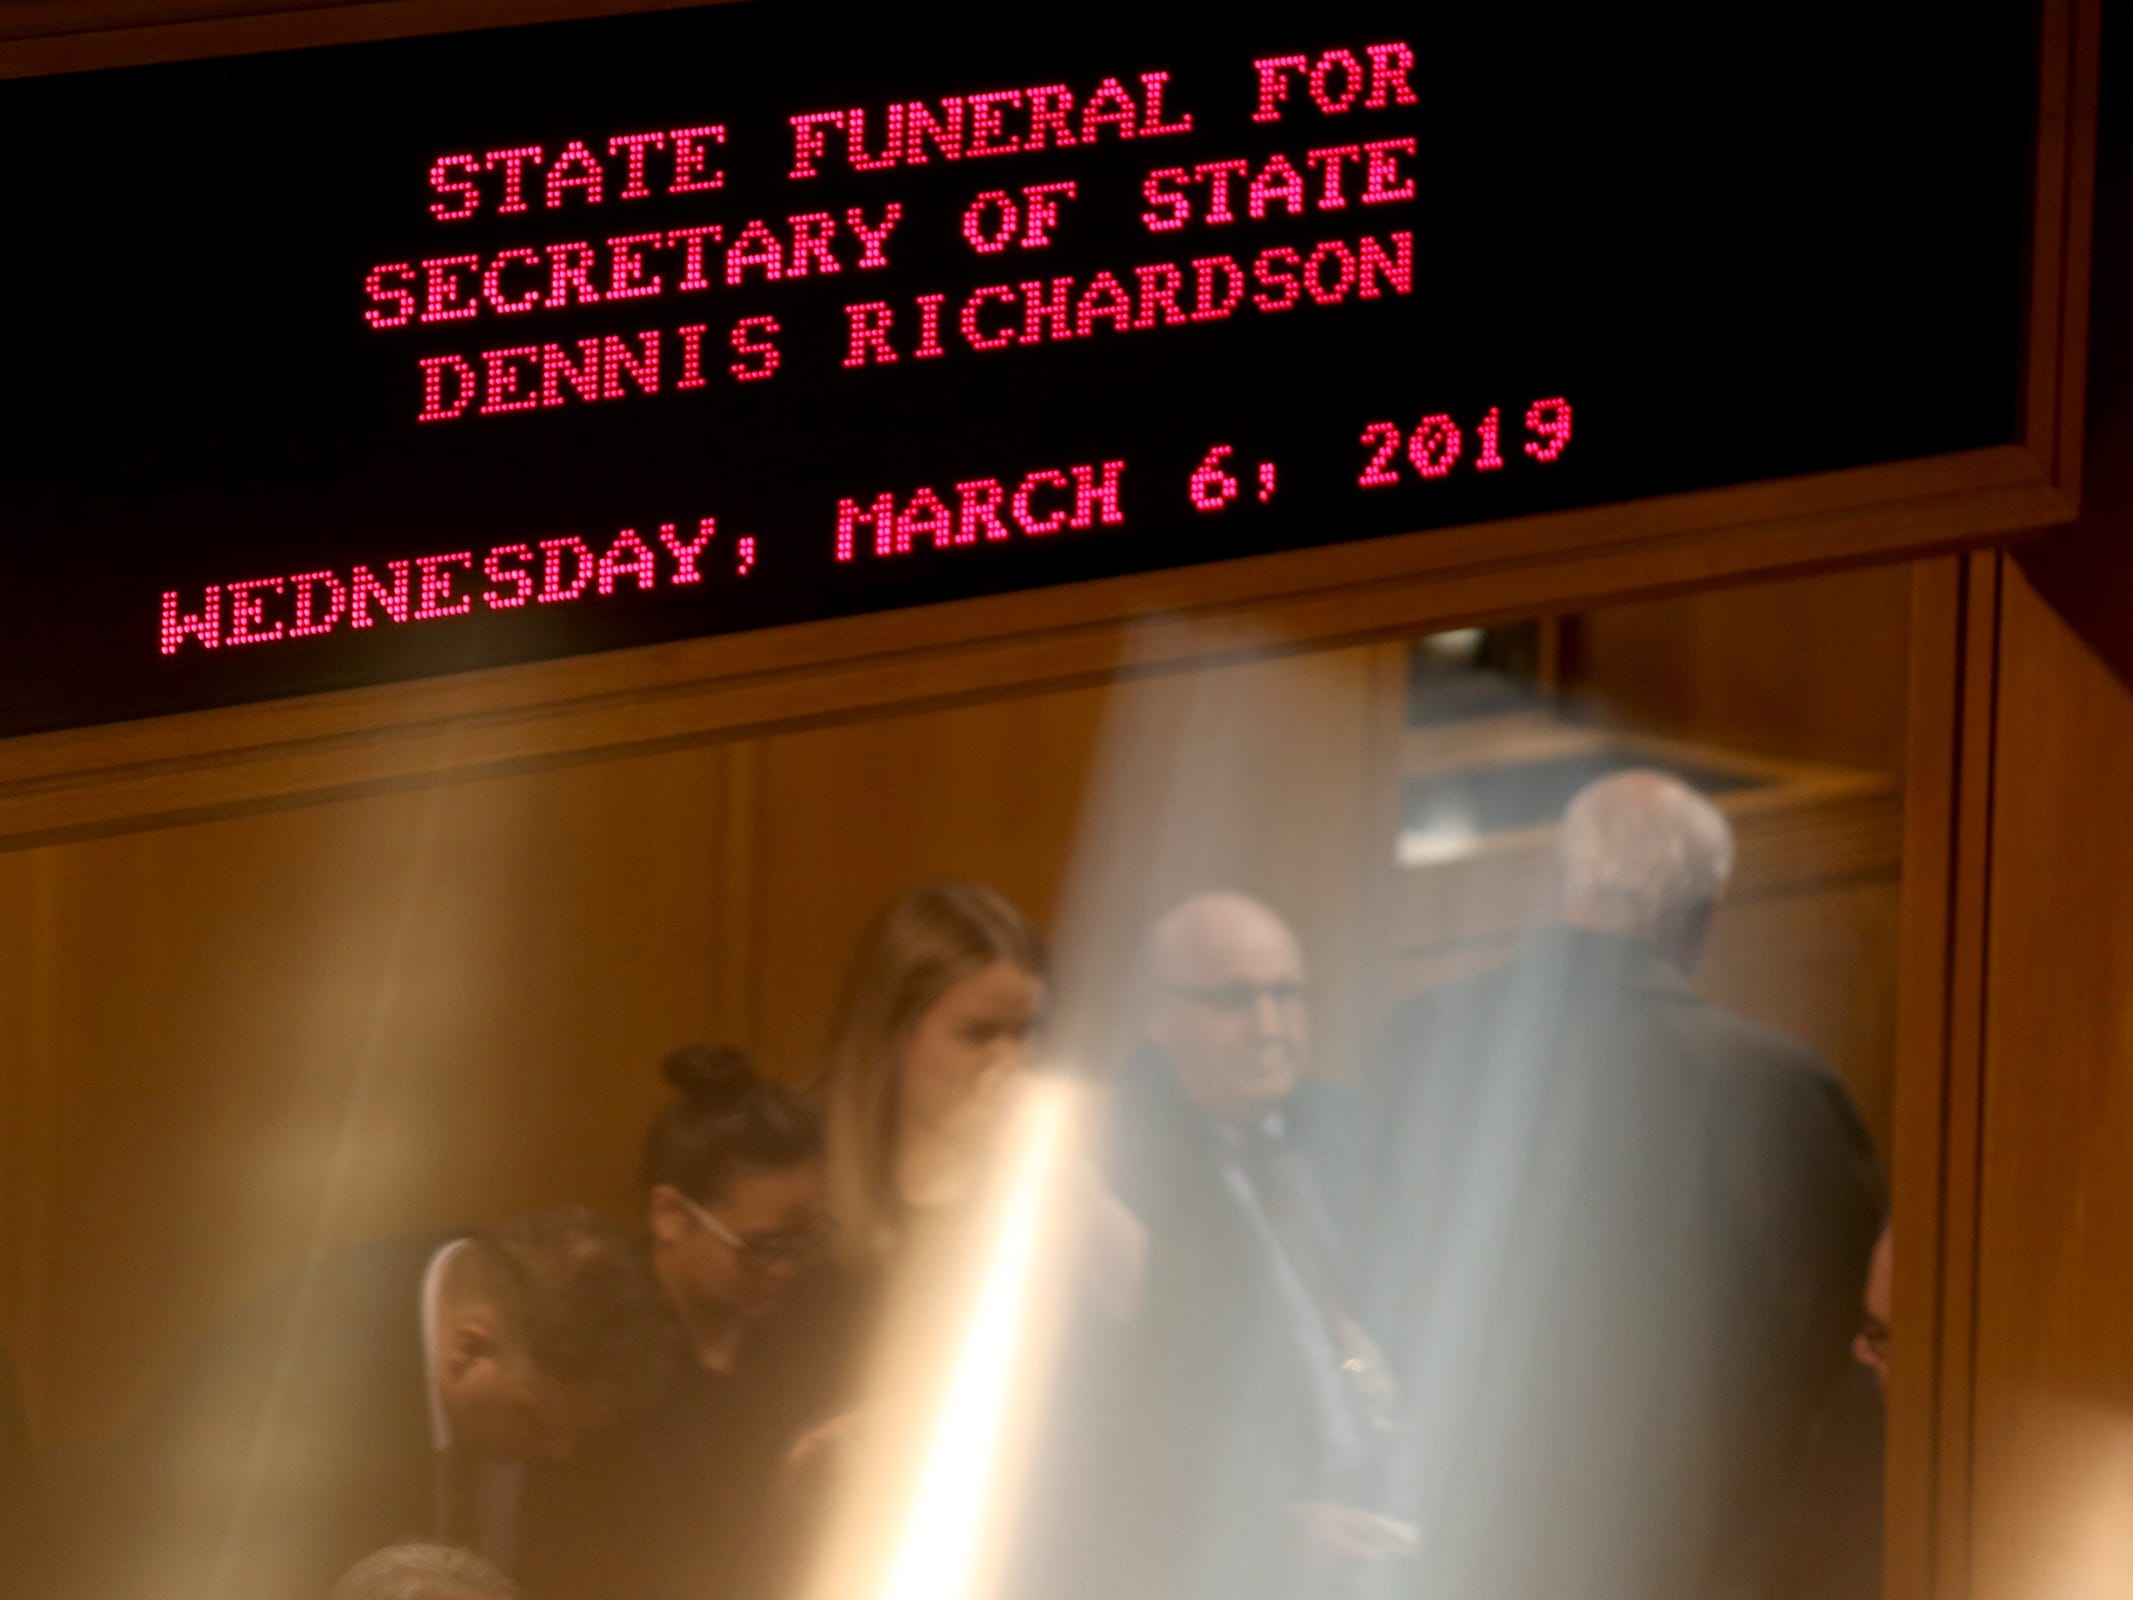 The state funeral for Secretary of State Dennis Richardson at the Oregon State Capitol in Salem on Wednesday, March 6, 2019.